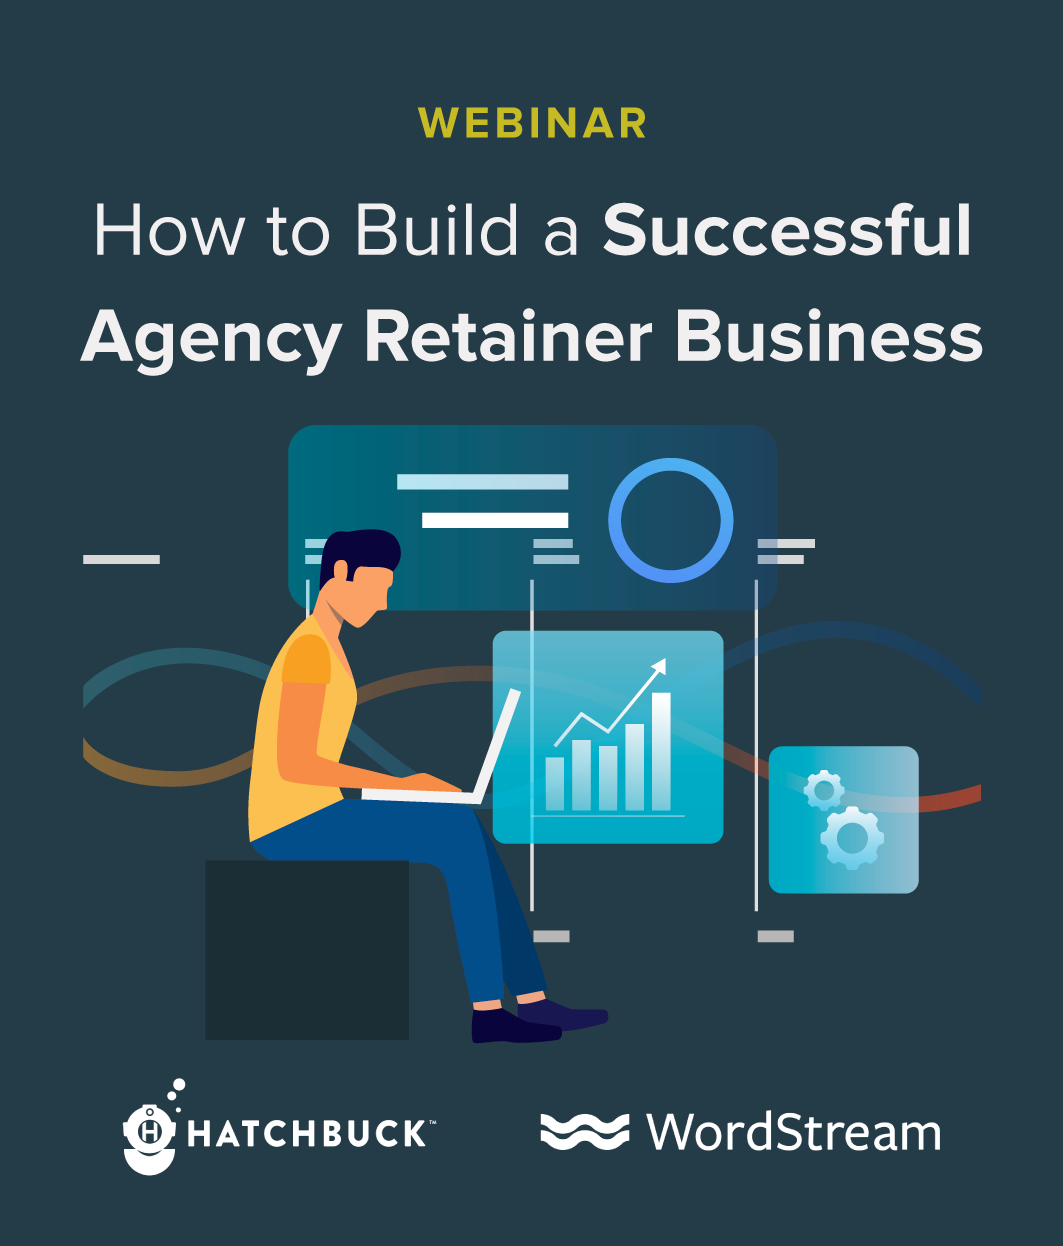 webinar-how-to-build-a-succesful-agency-retainer-business-1063x1246